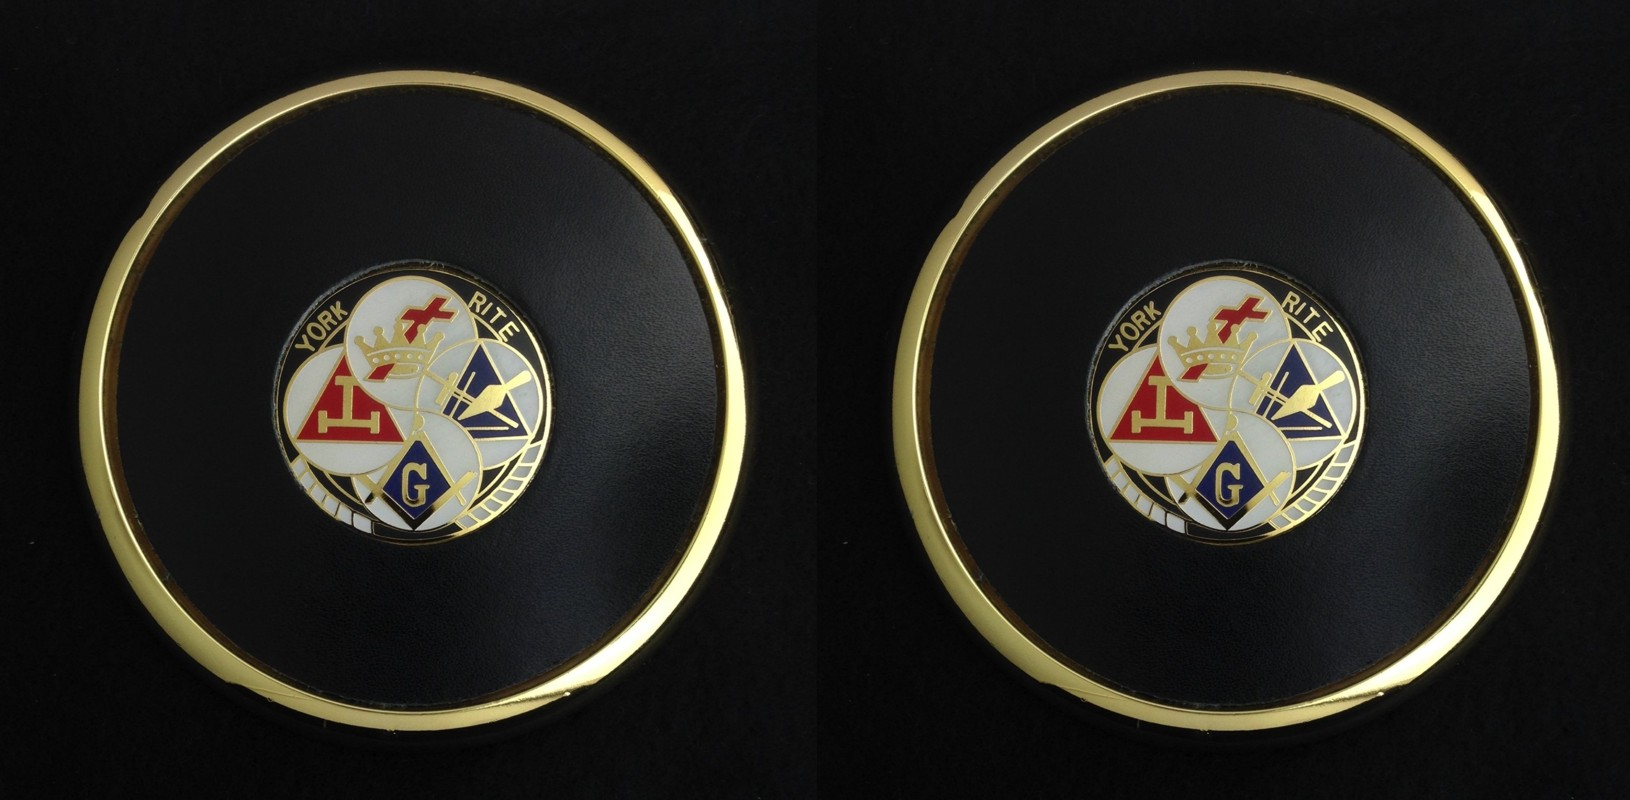 York Rite Coaster Set (Two) with Die Struck Medallion Insert